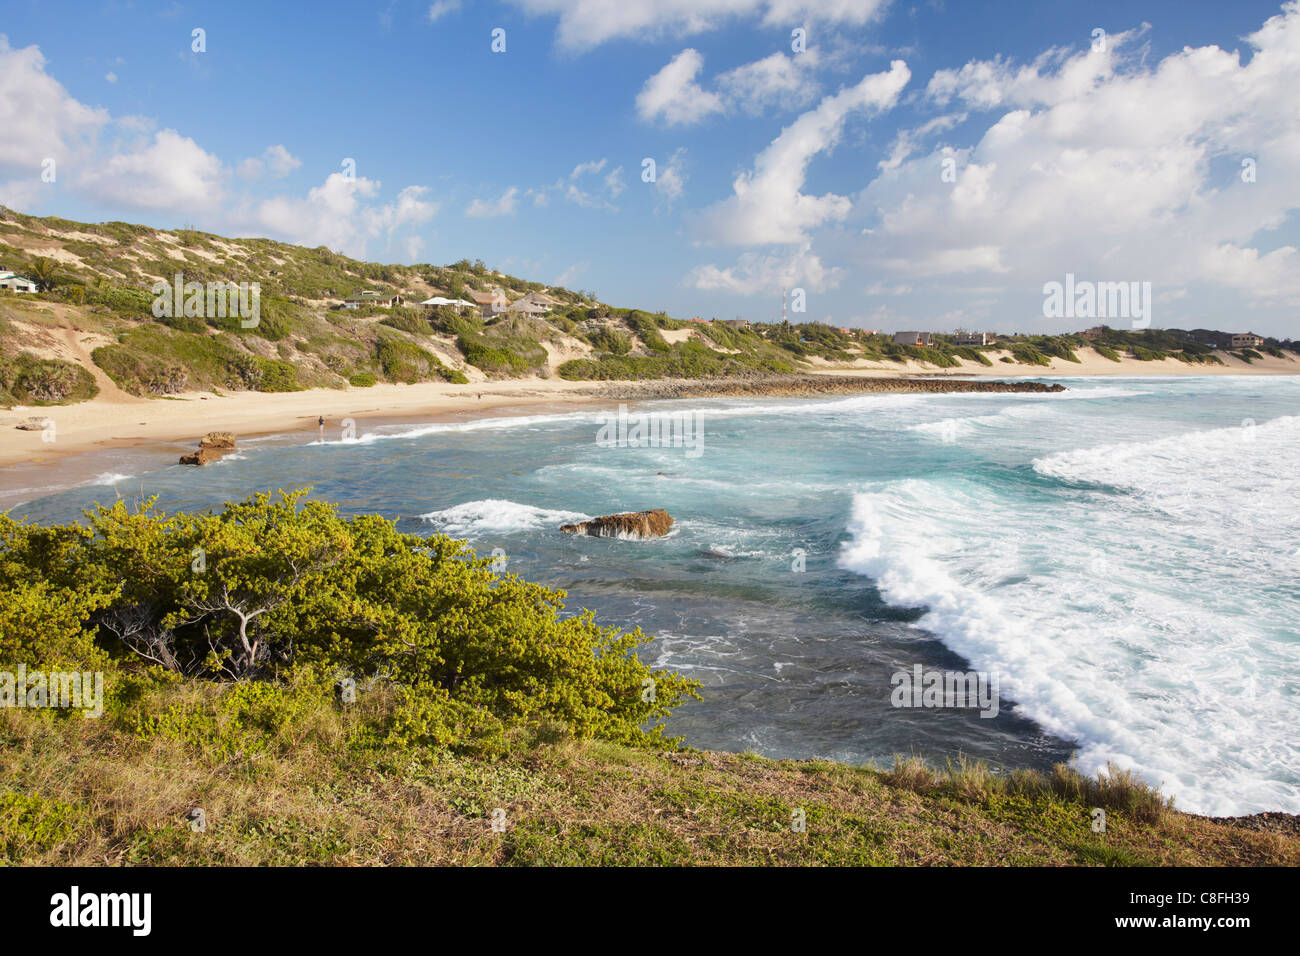 La plage de tofo, Tofo, Inhambane, au Mozambique Photo Stock